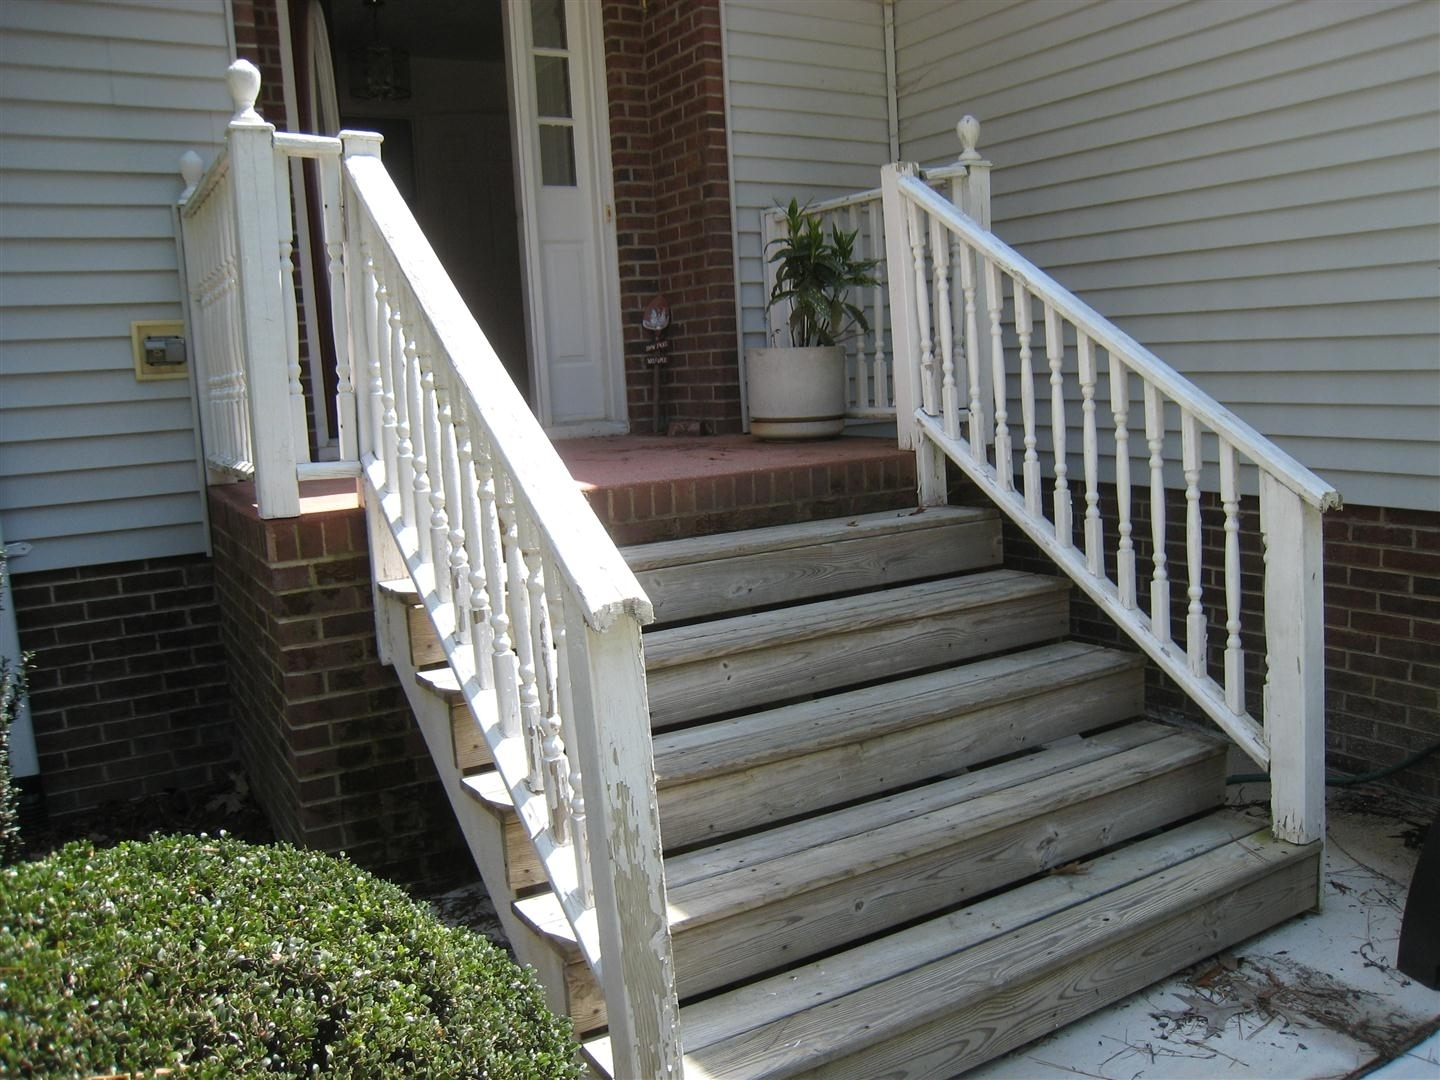 Wooden Handrails For Outdoor Porch Steps — Randolph Indoor And | Wooden Handrails For Outside Steps | Staircase | Building | Wrought Iron | Concrete Steps | Deck